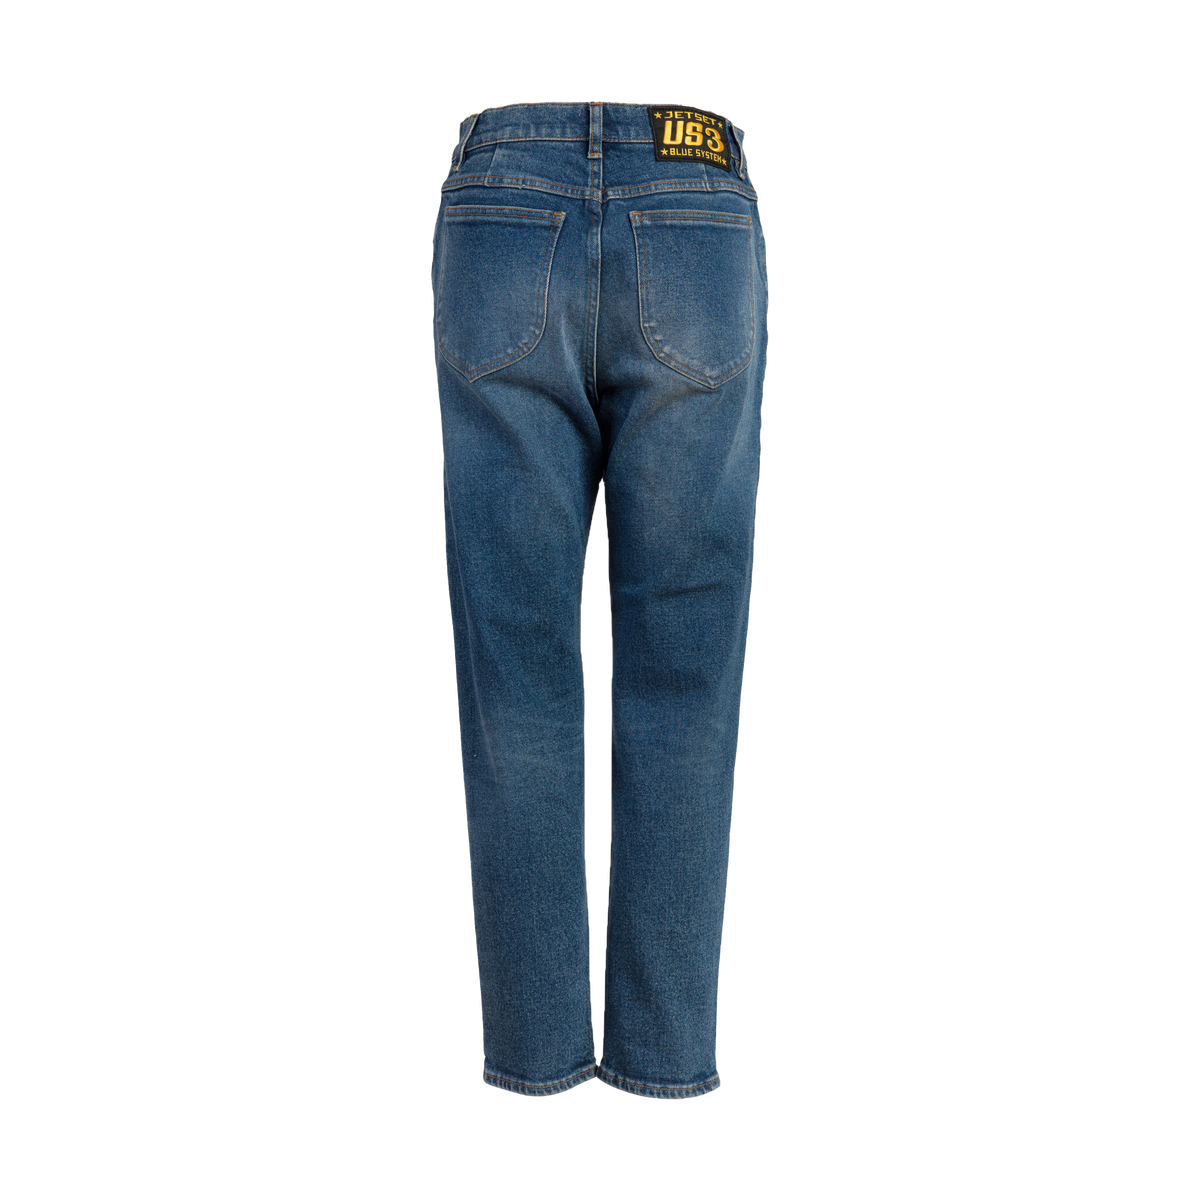 US3 Slim Denim Vintage